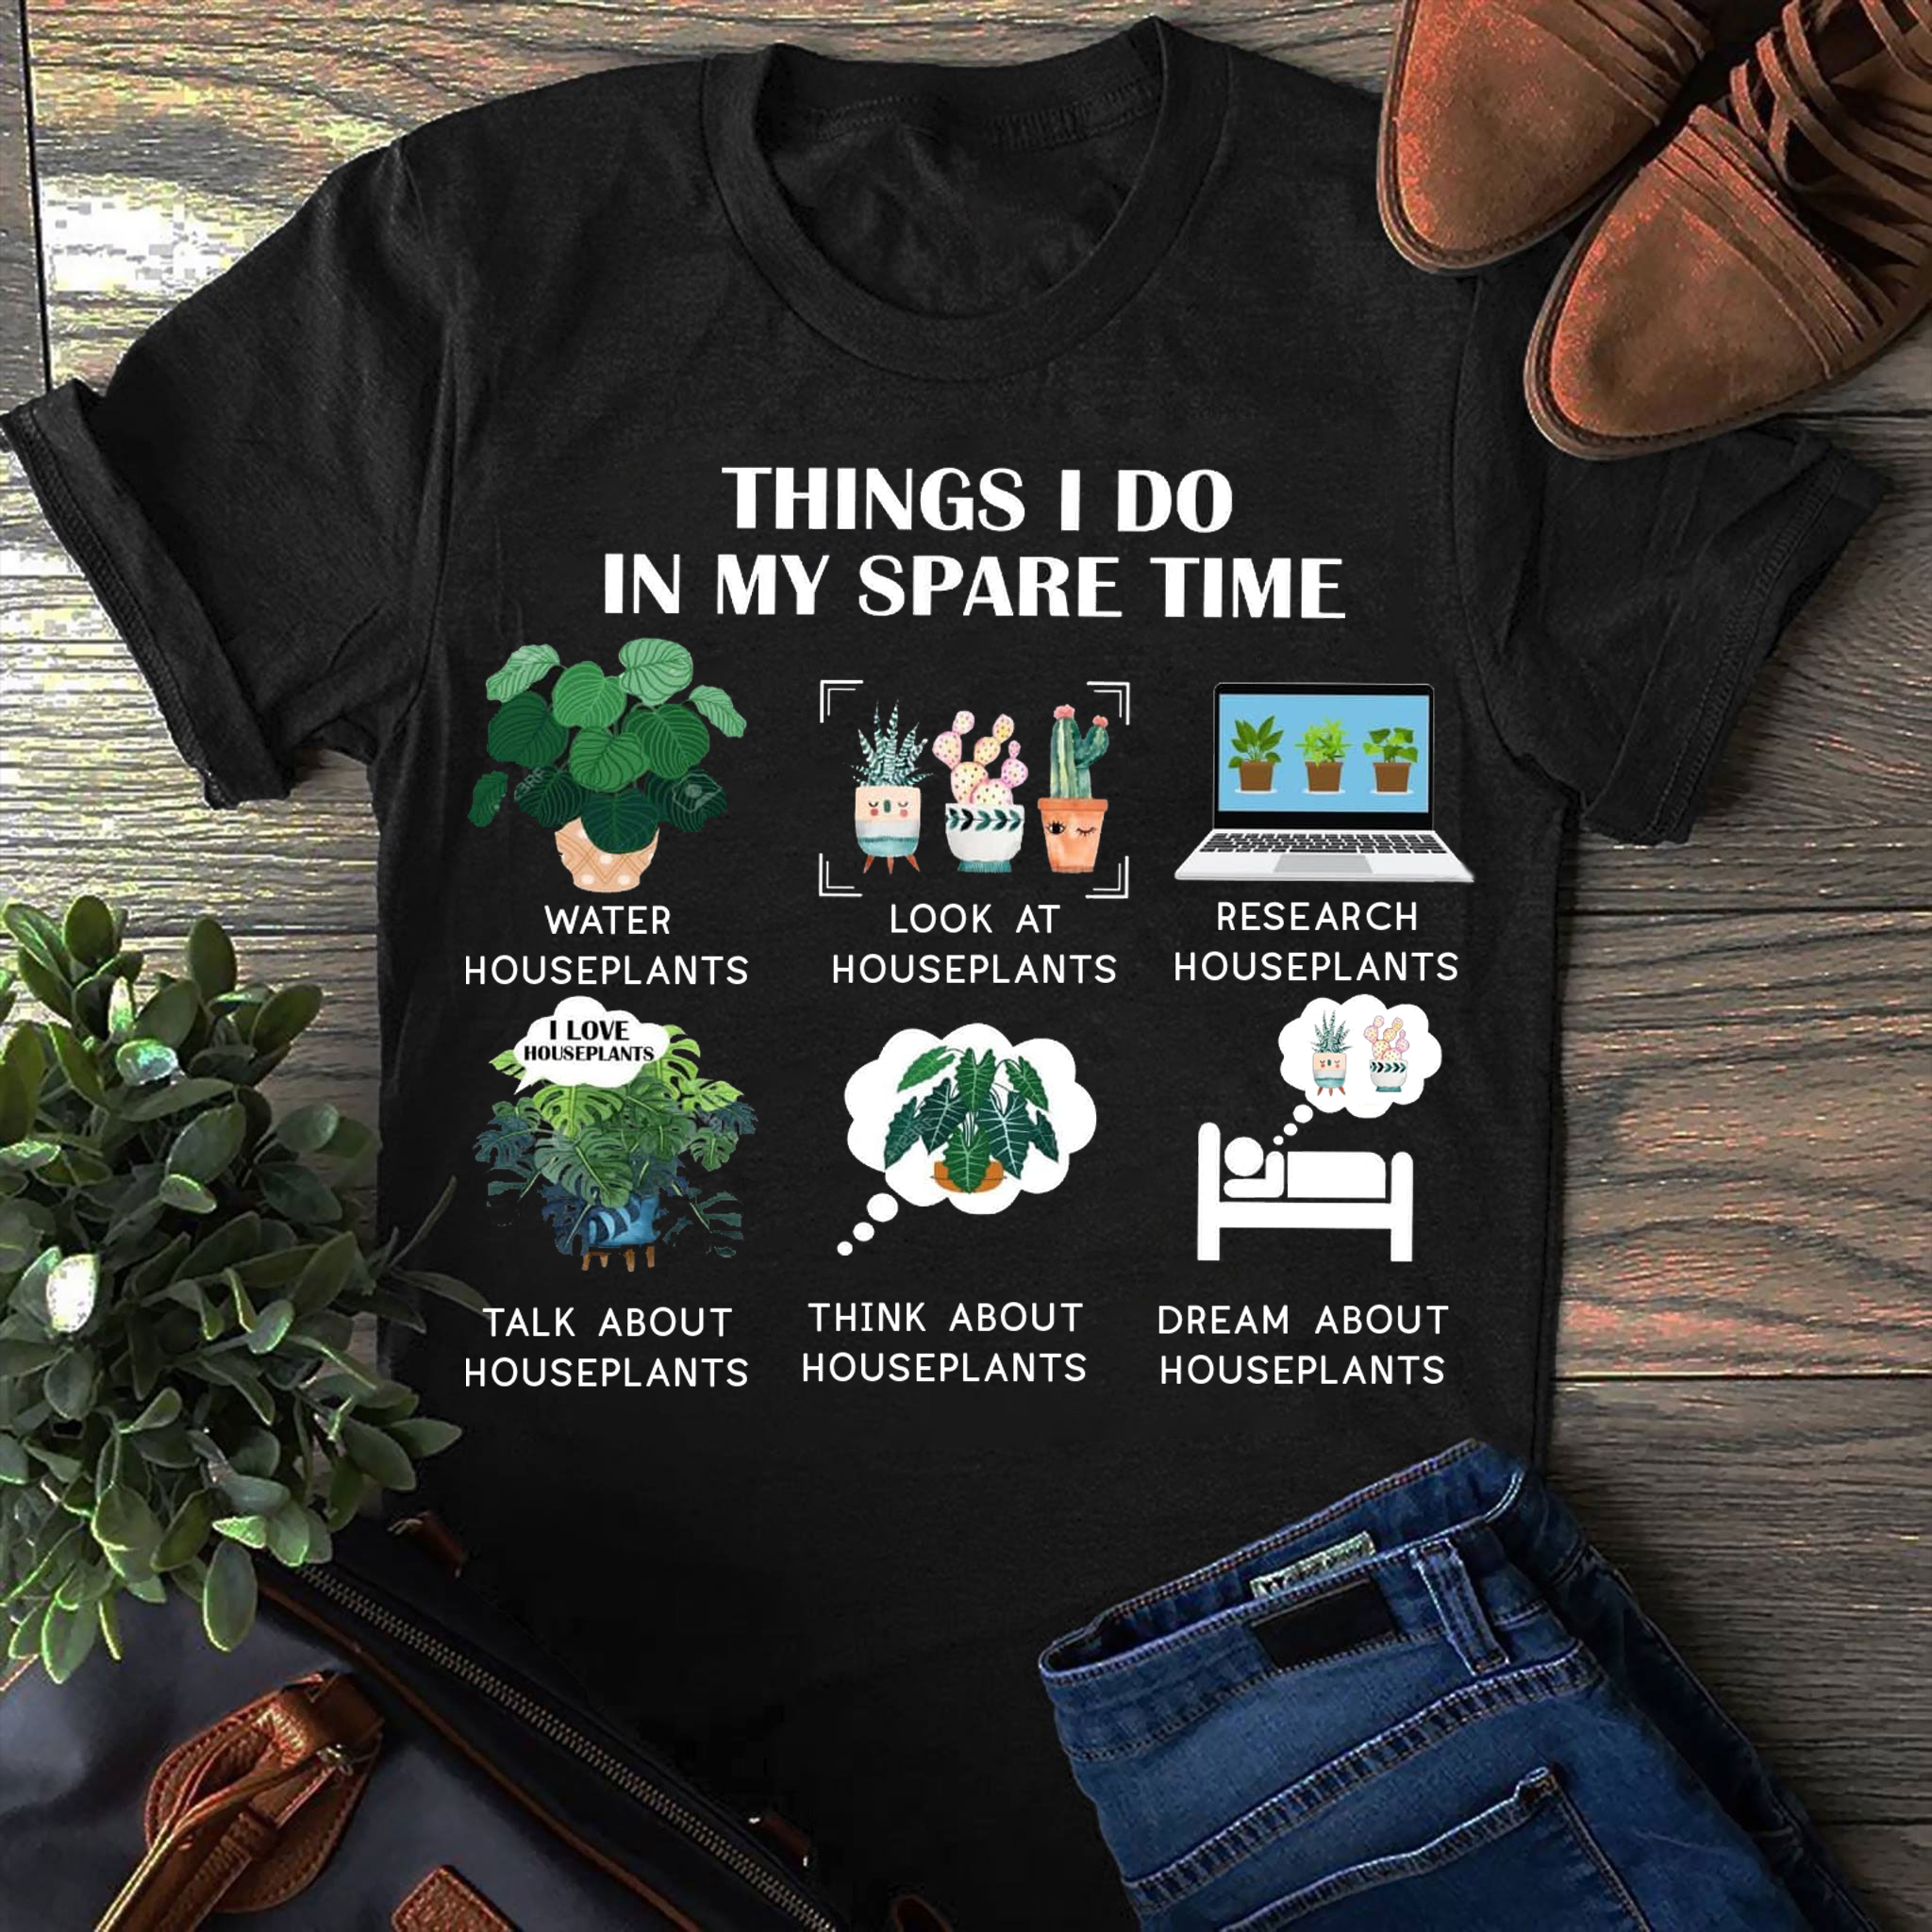 Things I Do In My Spare Time T Shirt Houseplants